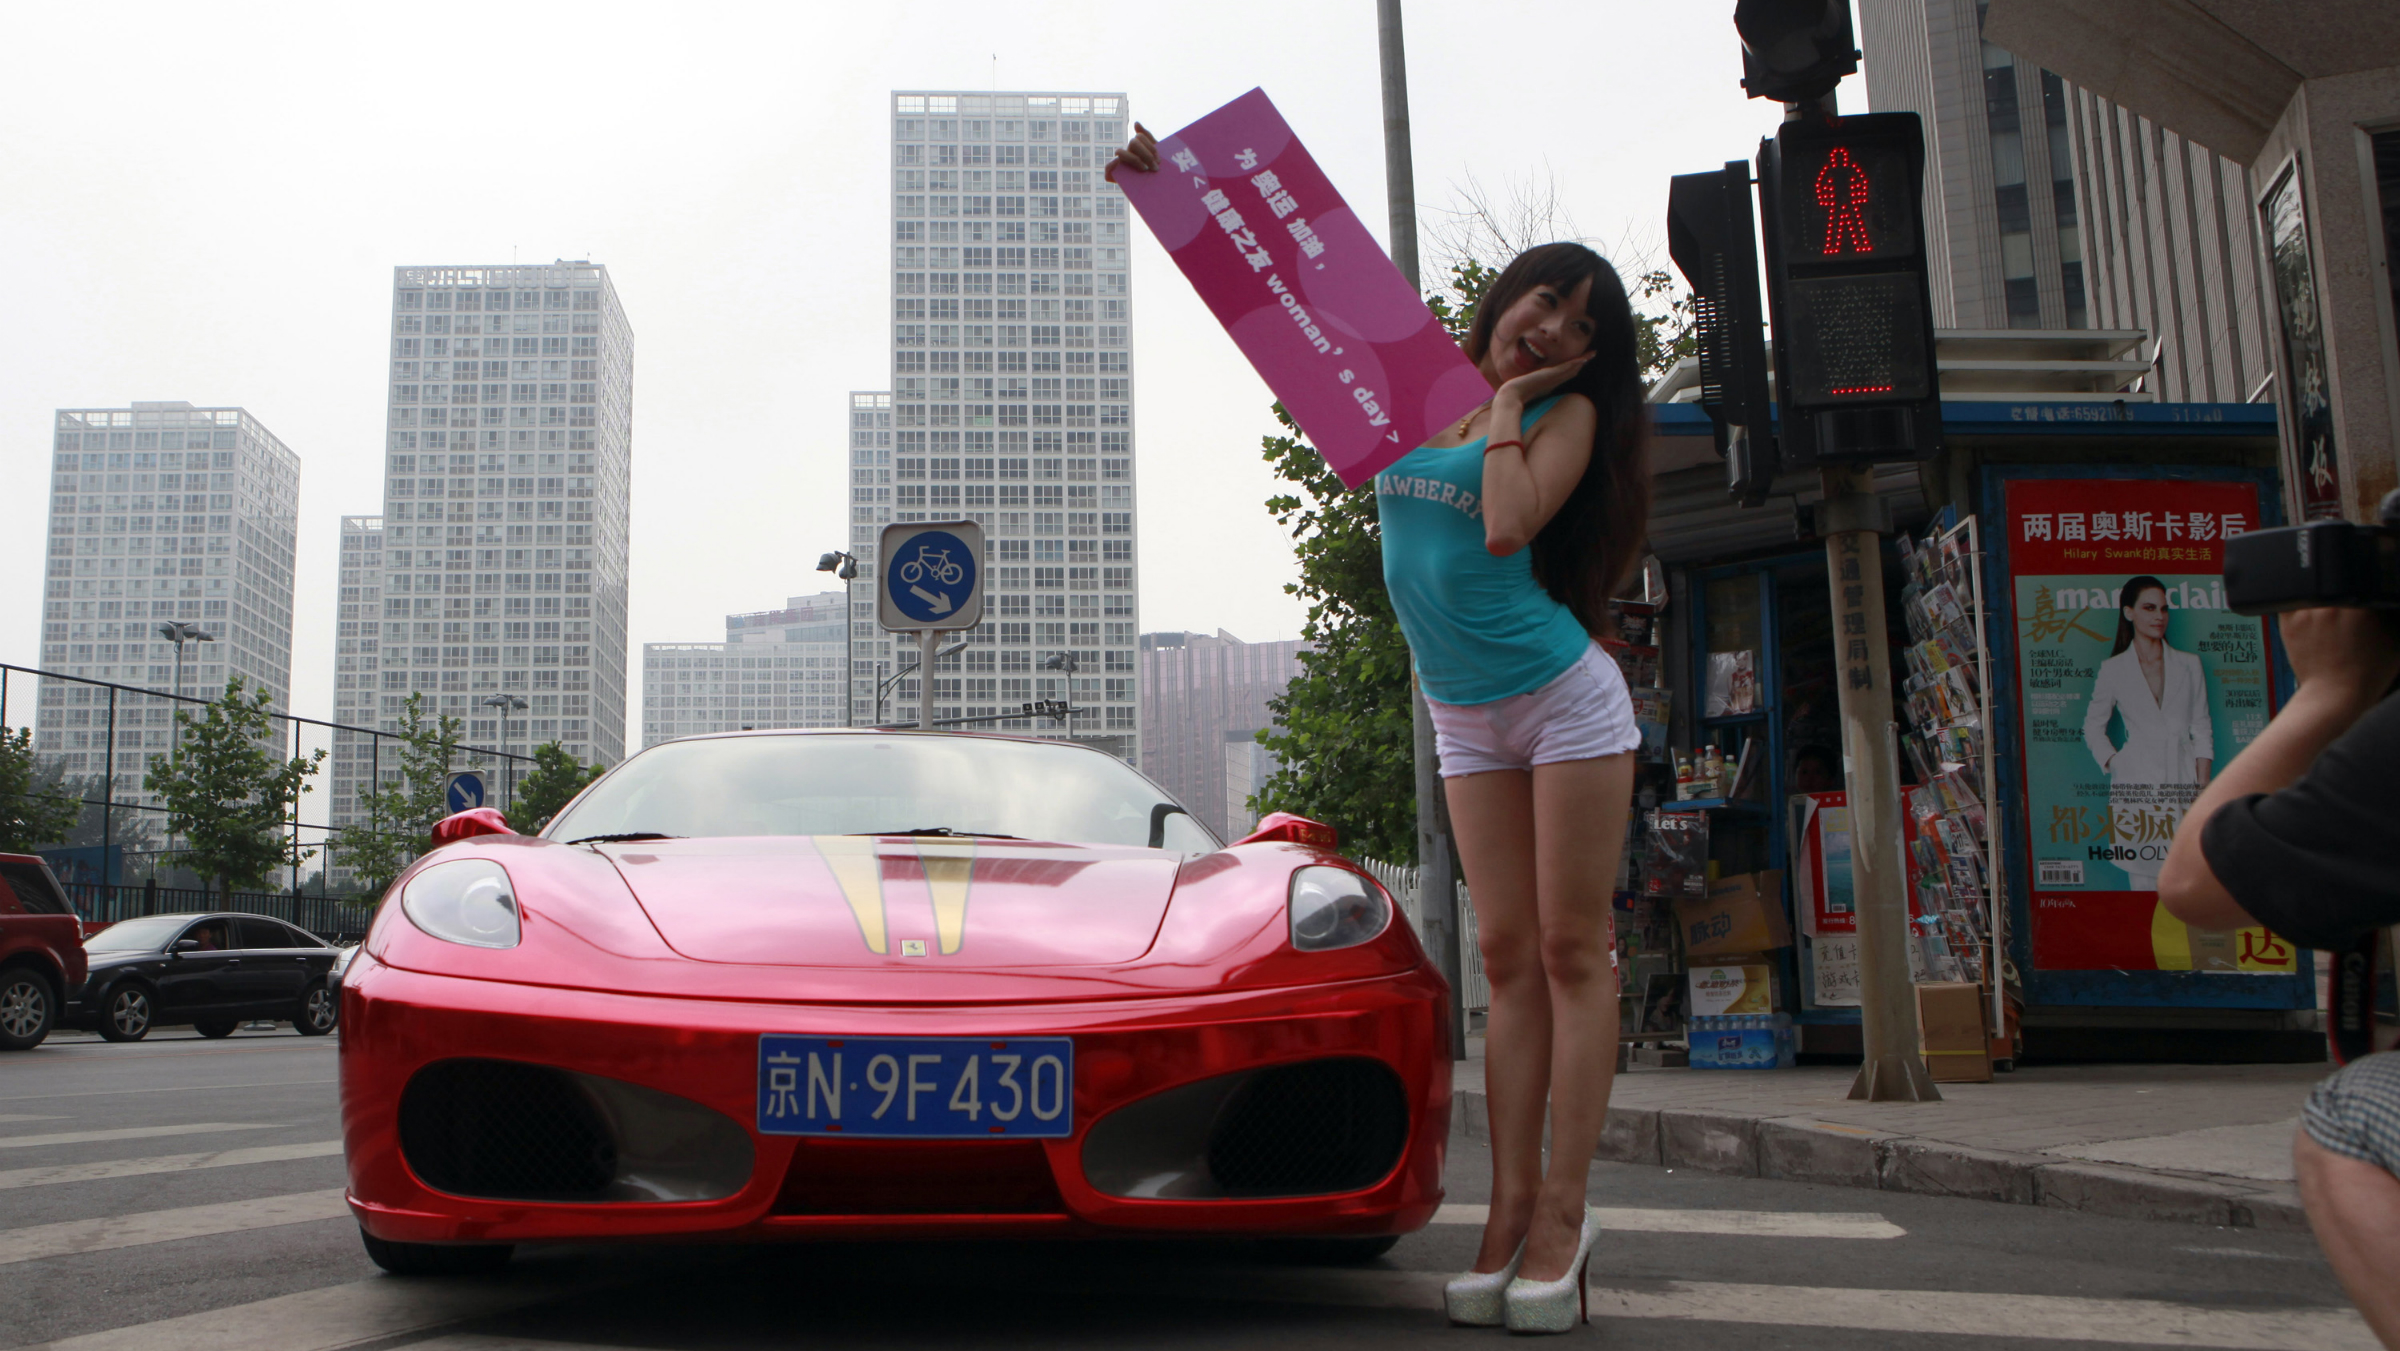 """In this photo taken Wednesday, July 18, 2012, a Chinese model poses next to a luxury sports car during a photo shoot for a Chinese magazine in Beijing, China. The Chinese characters on the board reads """"Support the Olympics, buy the magazine called Woman's Day."""""""